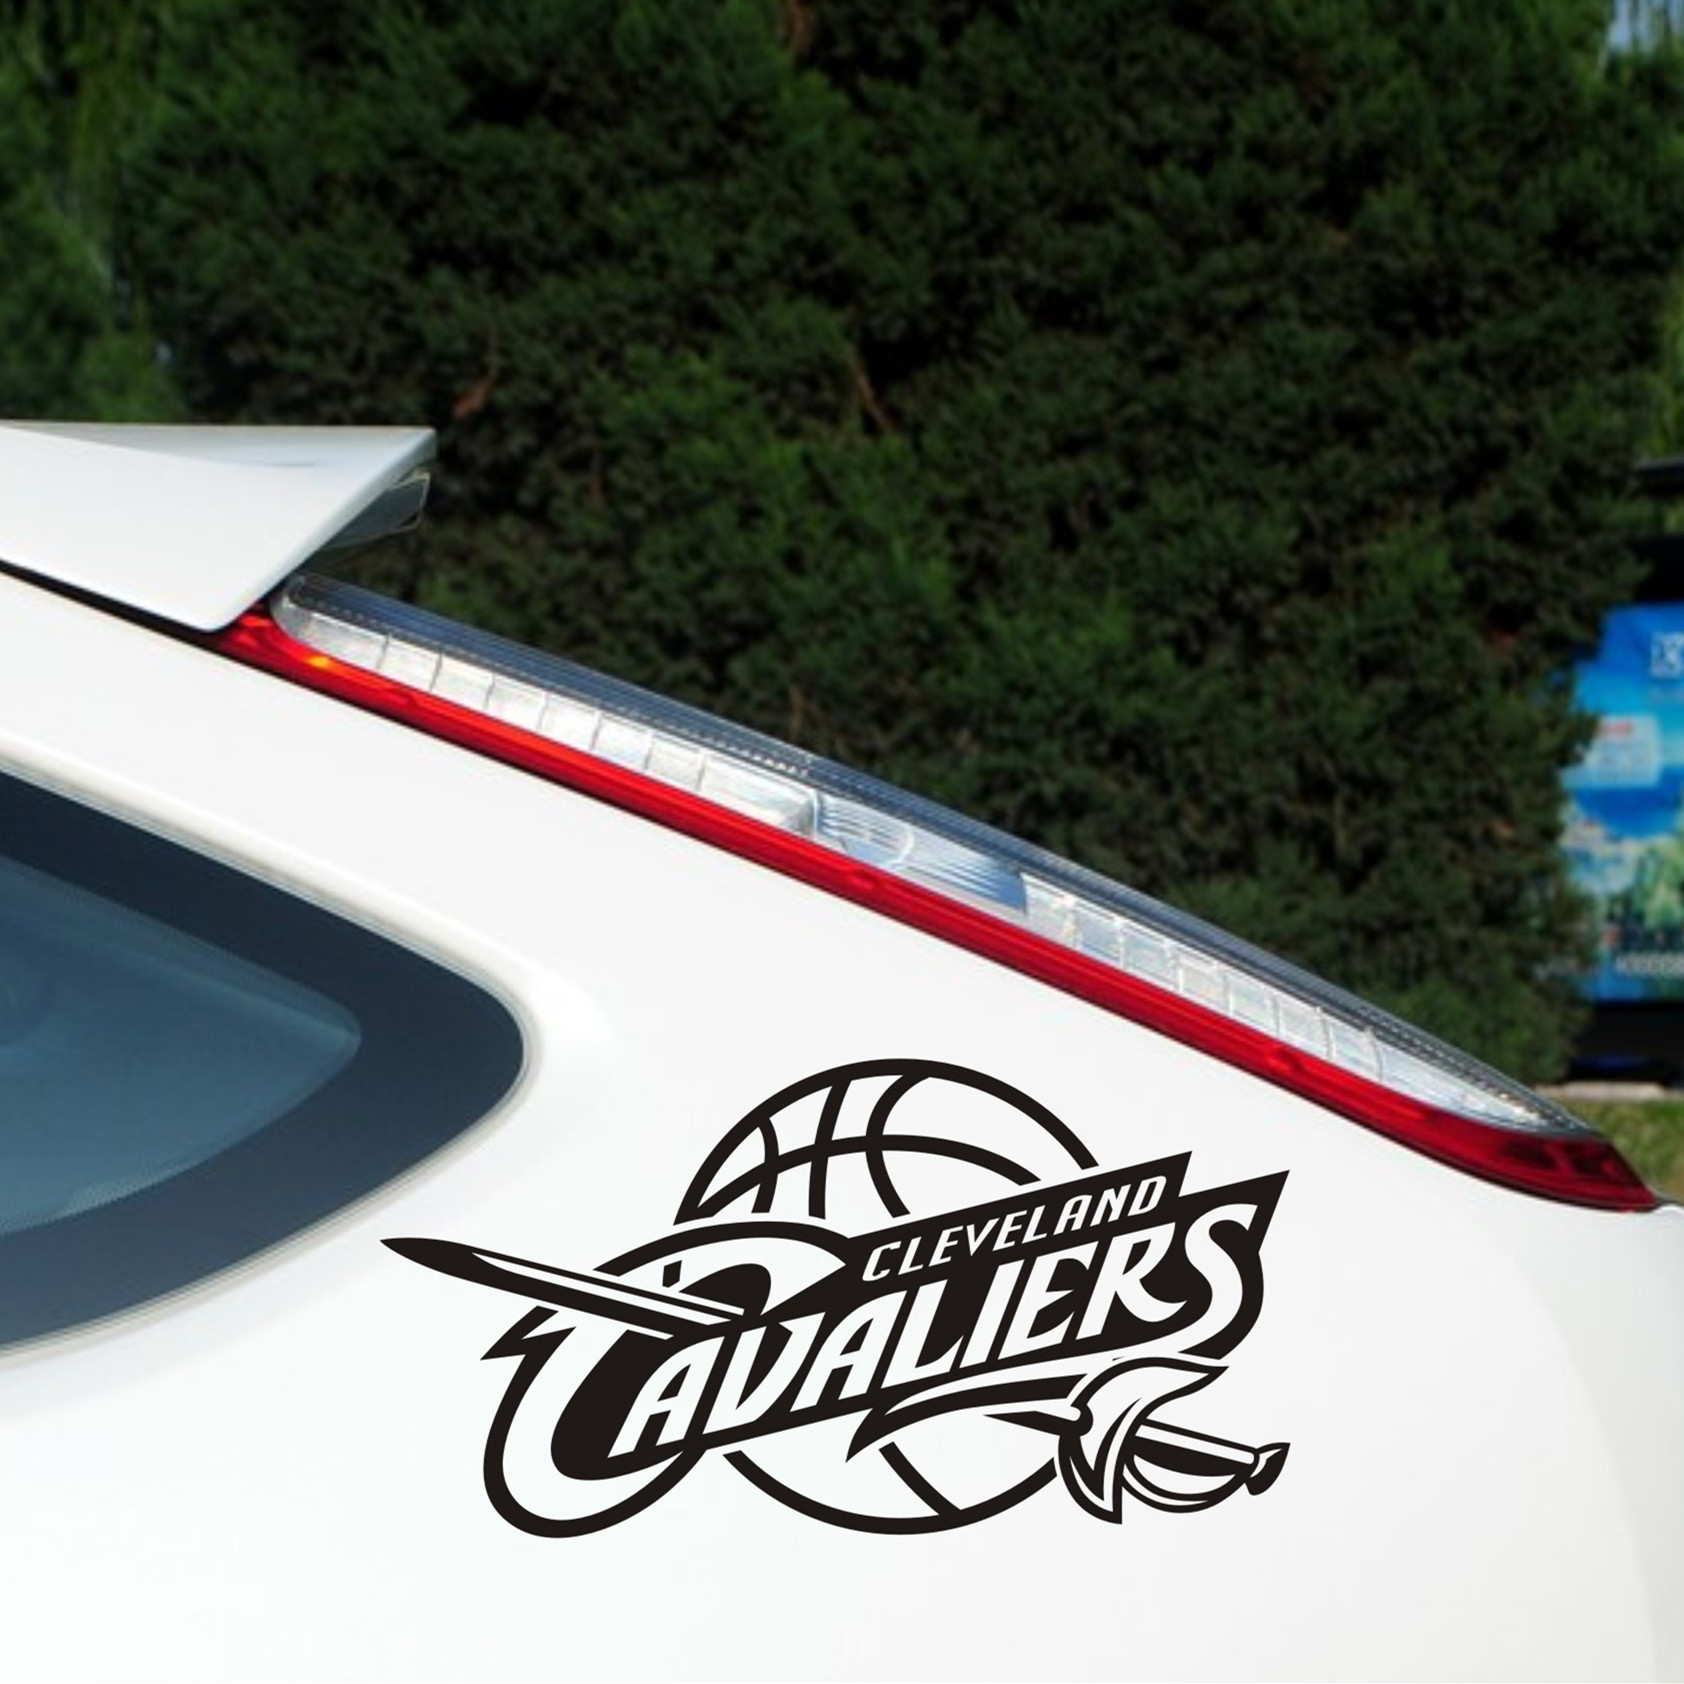 Pro czech gosklno owen loew lebron cavaliers nba team logo car stickers reflective car stickers car stickers tank body